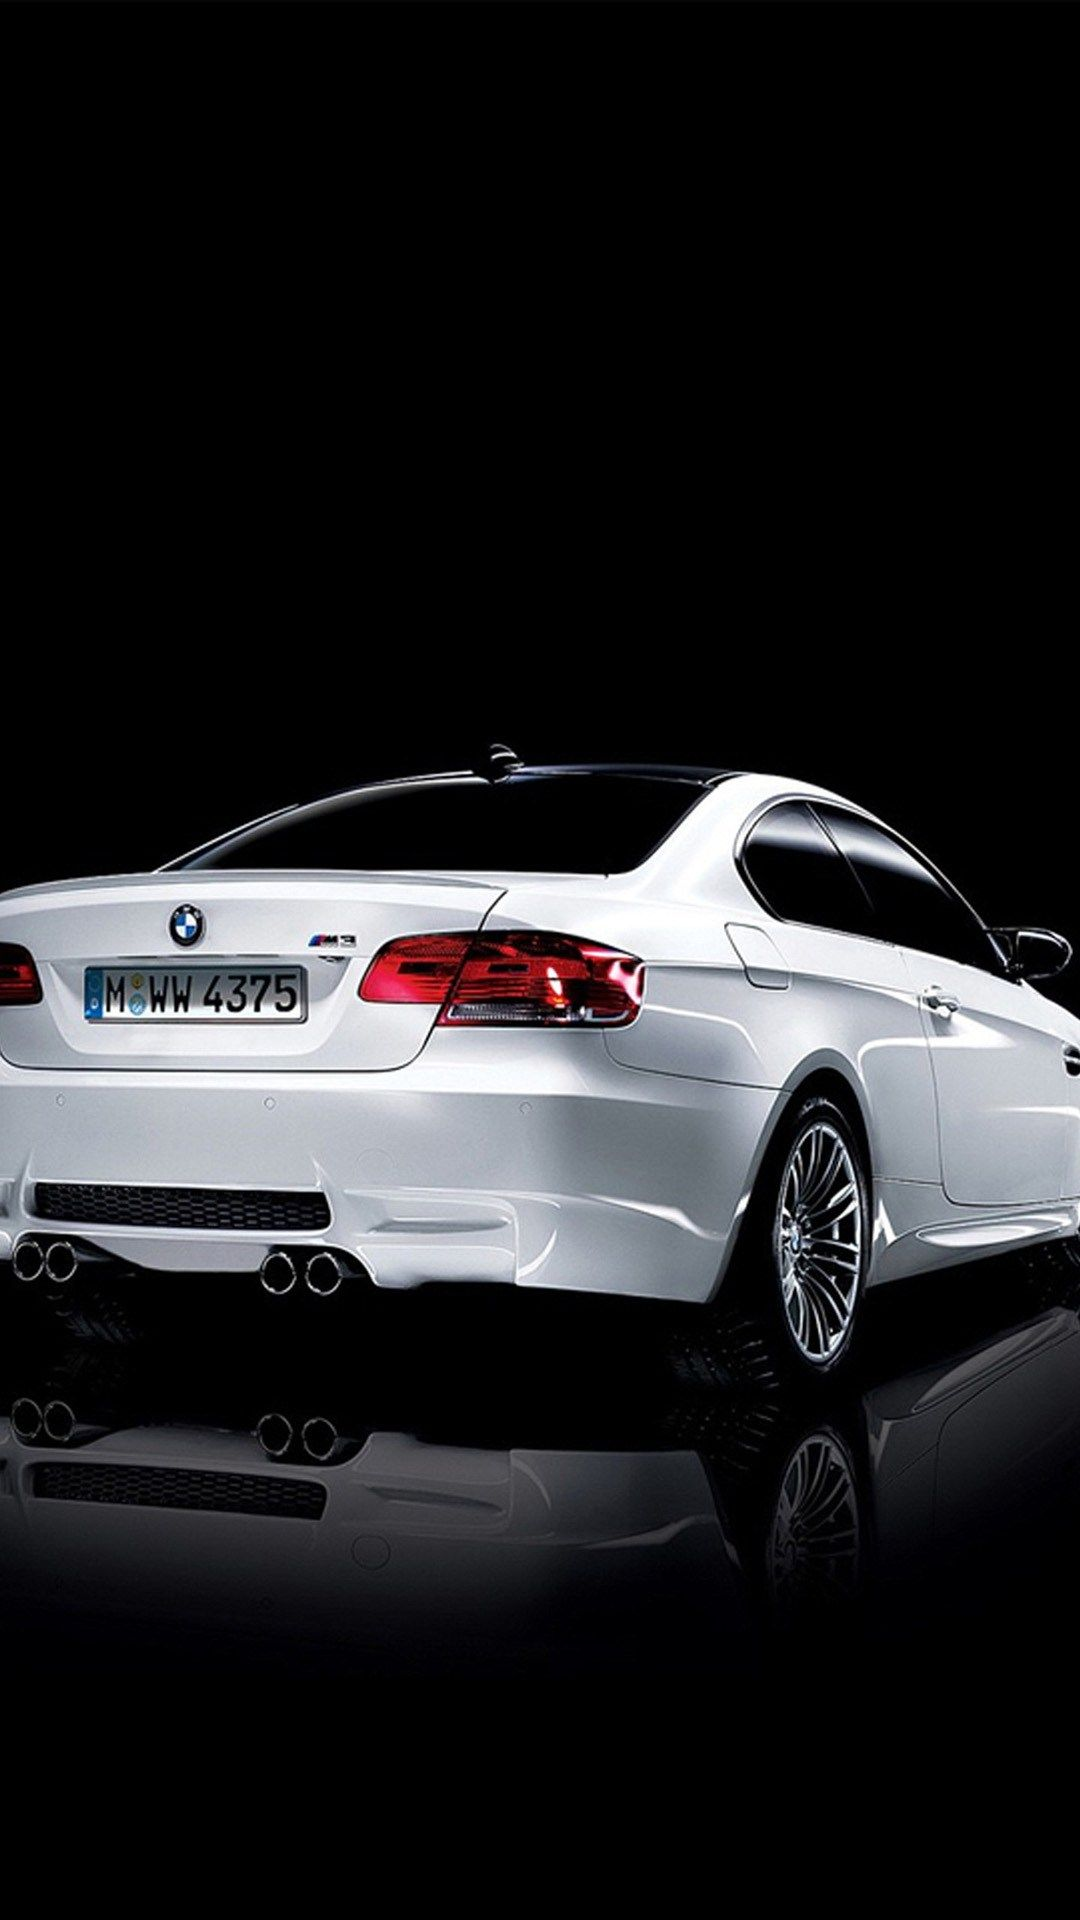 Bmw M3 Fall Wallpapers Hd Is A Fantastic Hd Wallpaper For Your Pc